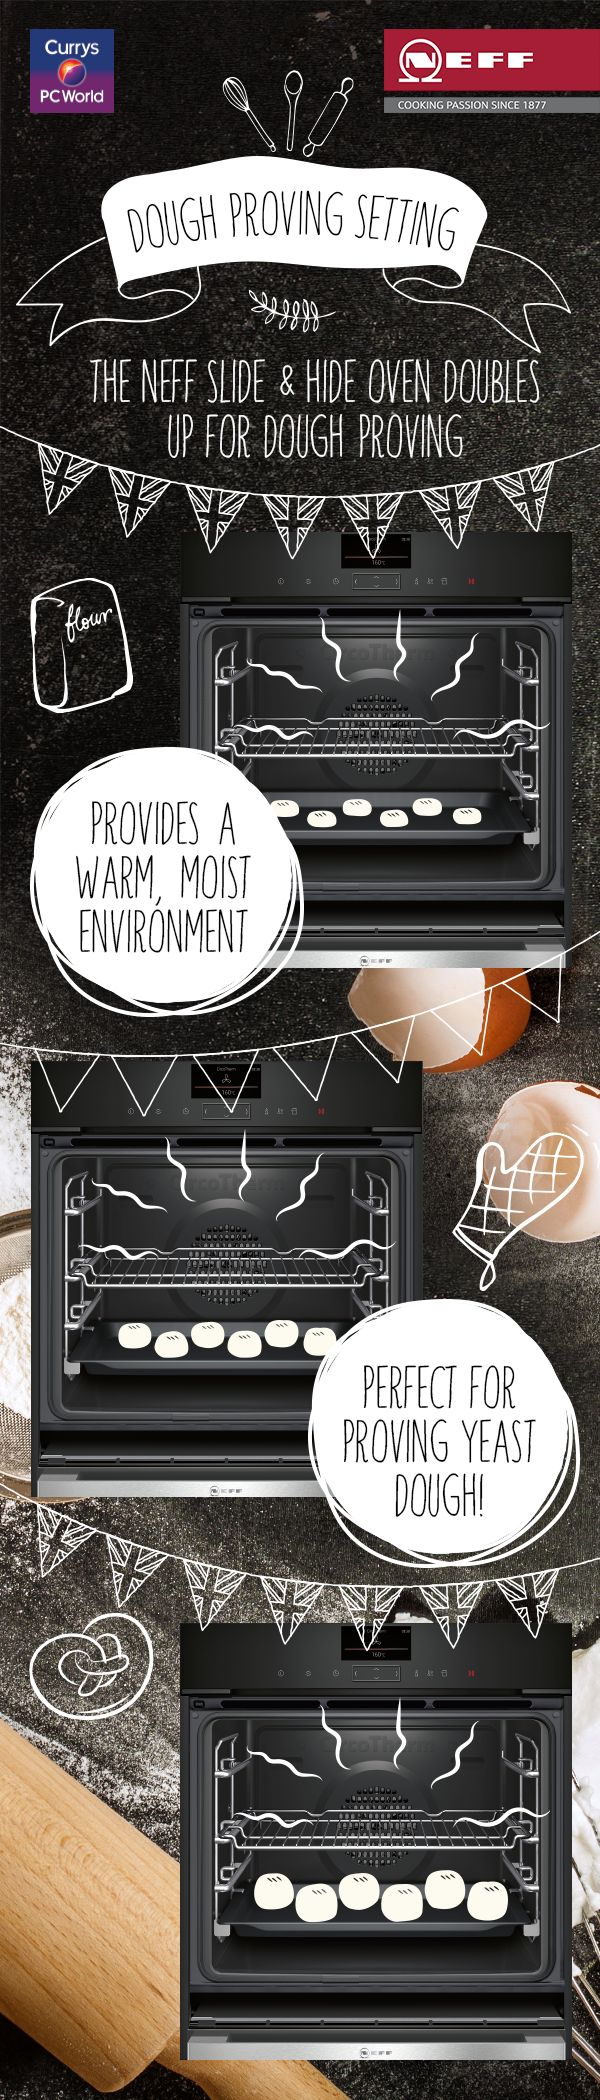 The Neff Slide & Hide oven comes with a handy dough proving funtion; providing a warm, moist environment for prepping the perfectly risen loaf! @biybyneff